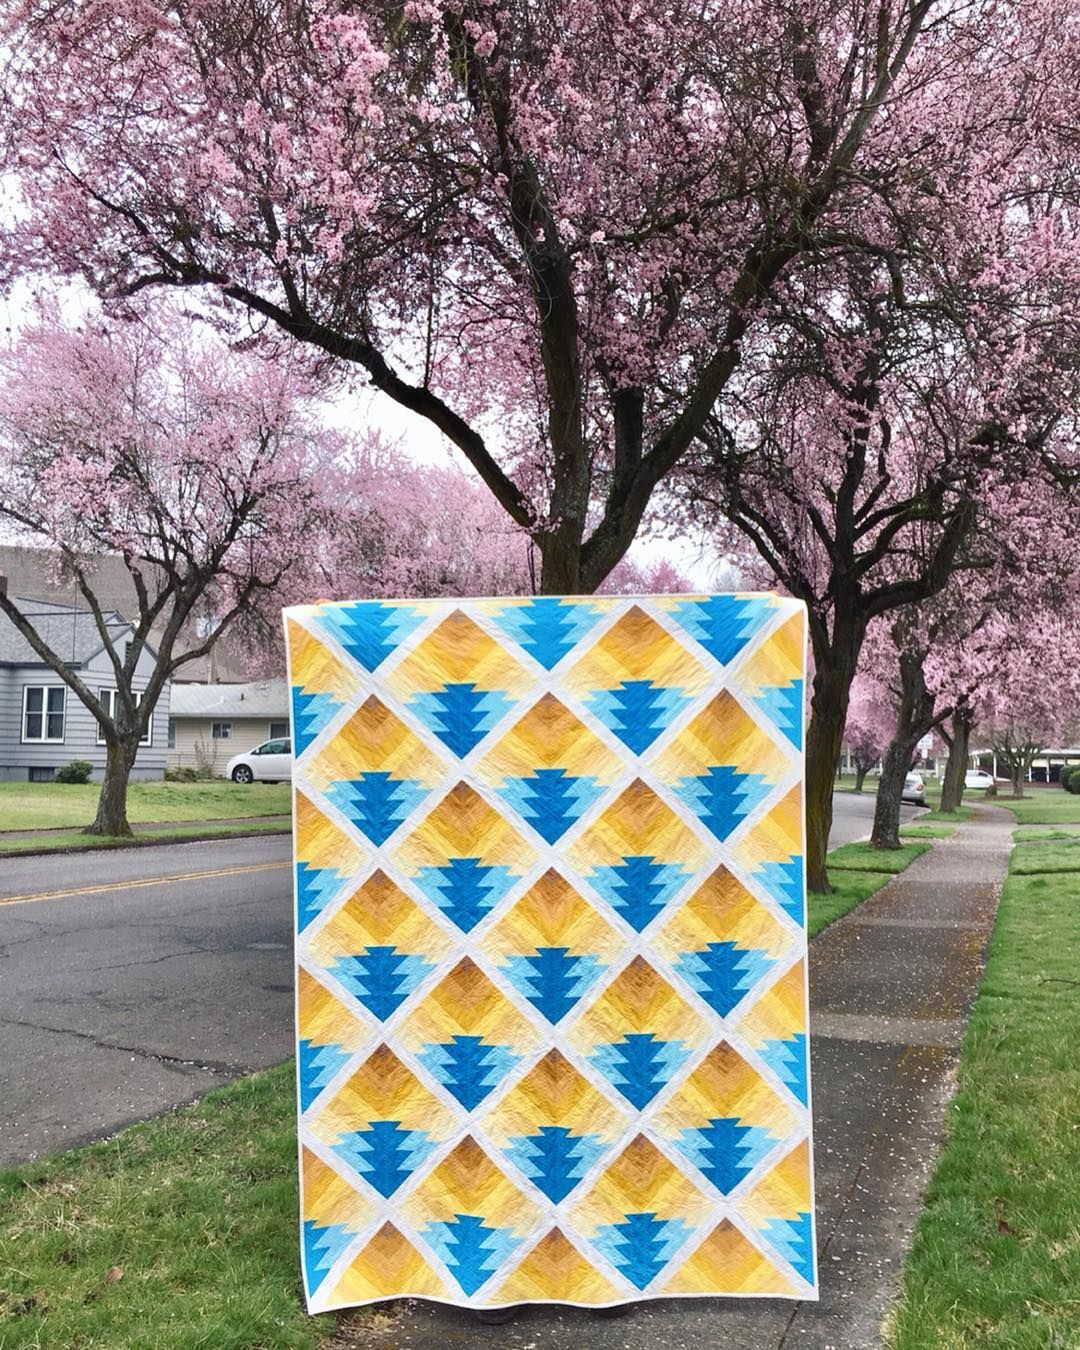 Maple Winds Quilts On Instagram These Cherry Blossom Trees Are Hands Down My Favorite Part Of Spring In The Pnw I Couldn T Let Their Short Blooming Period